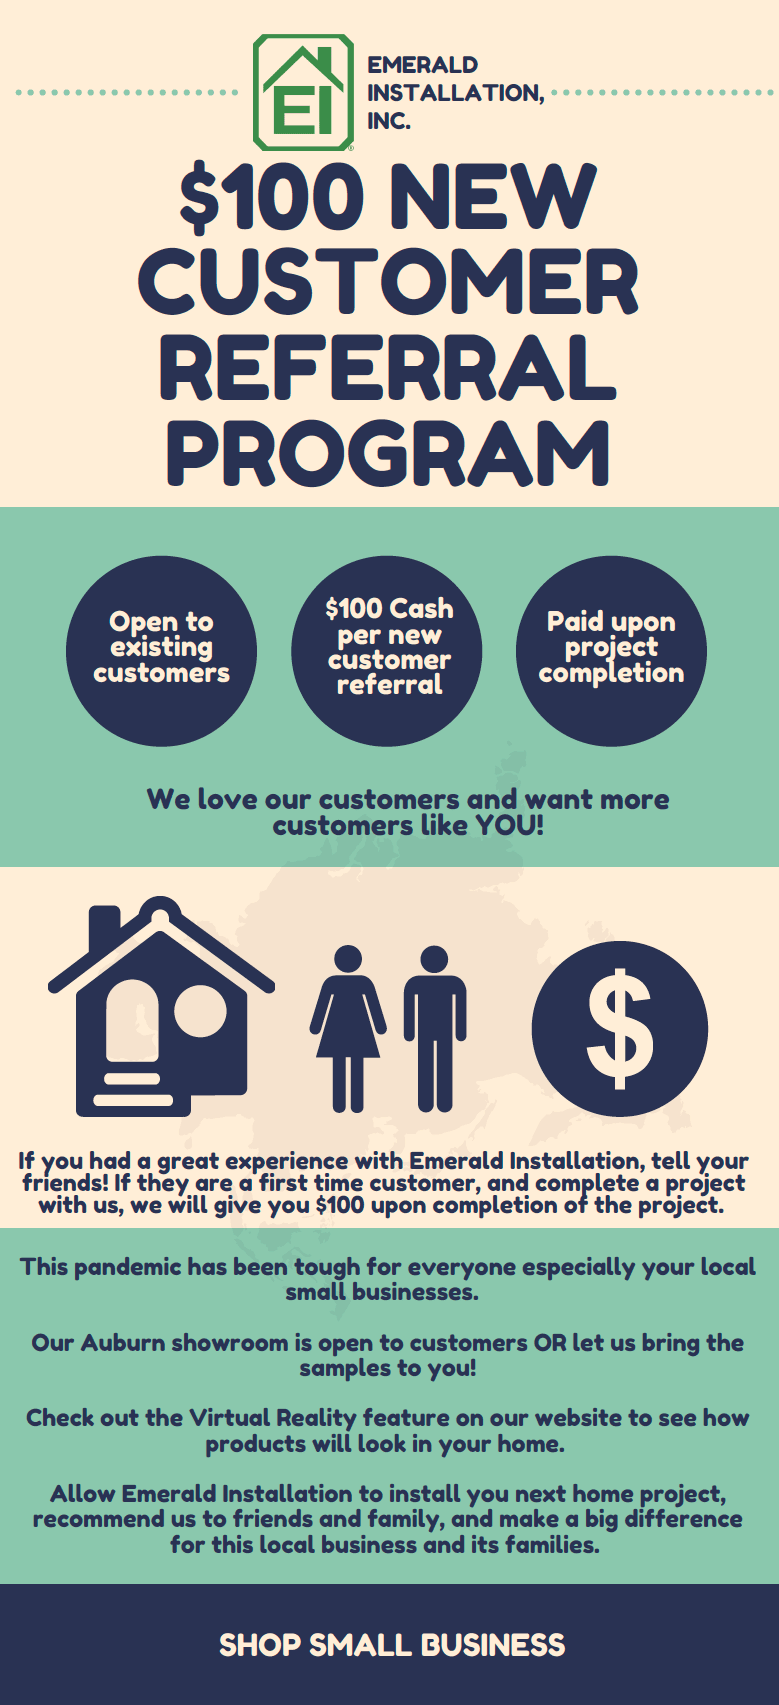 $100 New Customer Referral Program | Contact us for more information!